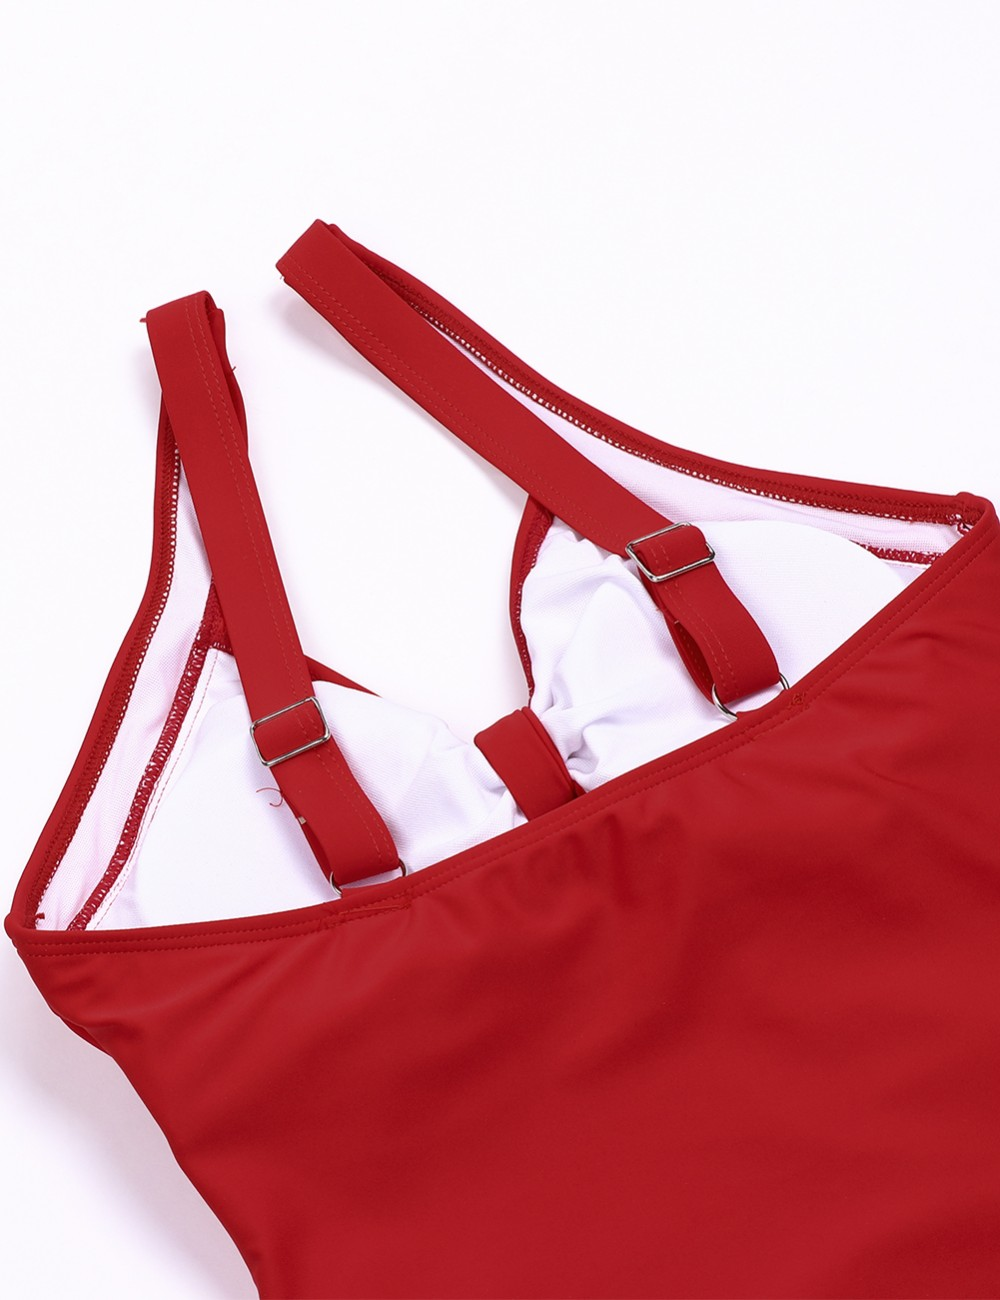 Red Keyhole One Piece Swimsuit With Bowknot For Beach Days